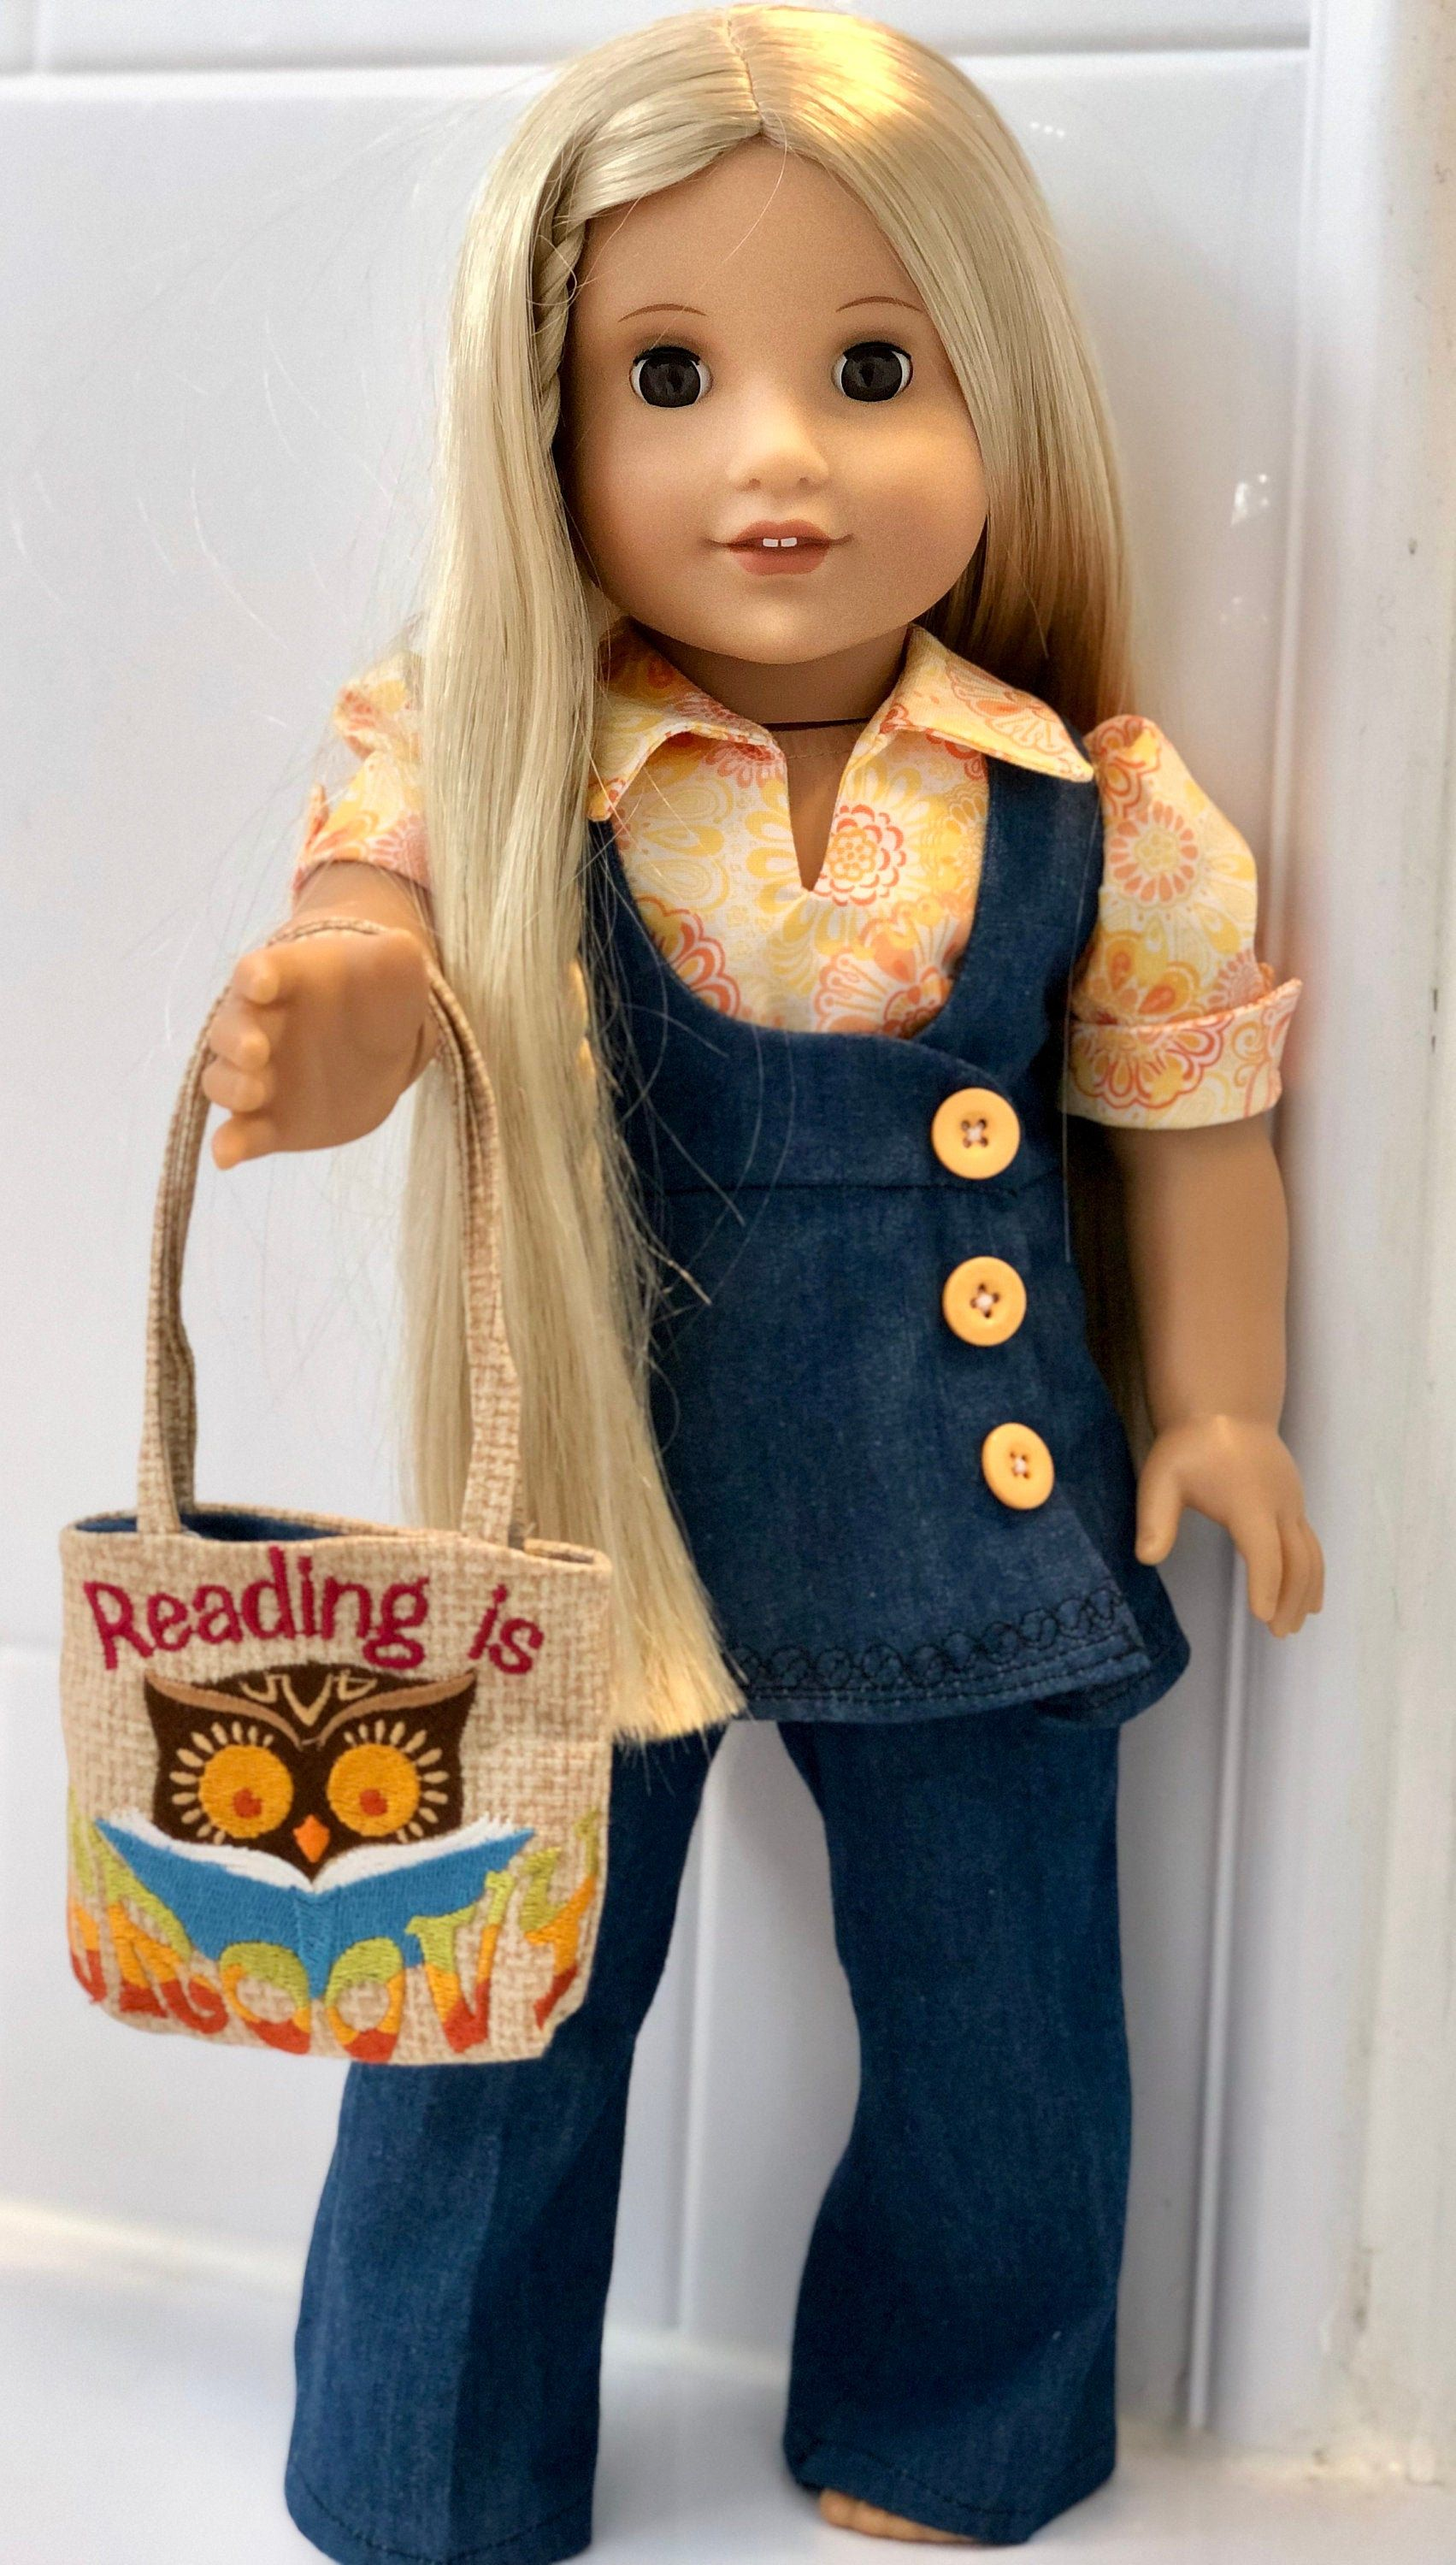 Retro 1970's Style Denim Suit and Blouse with Book Bag for 18 Dolls such as American Girl #americandolls